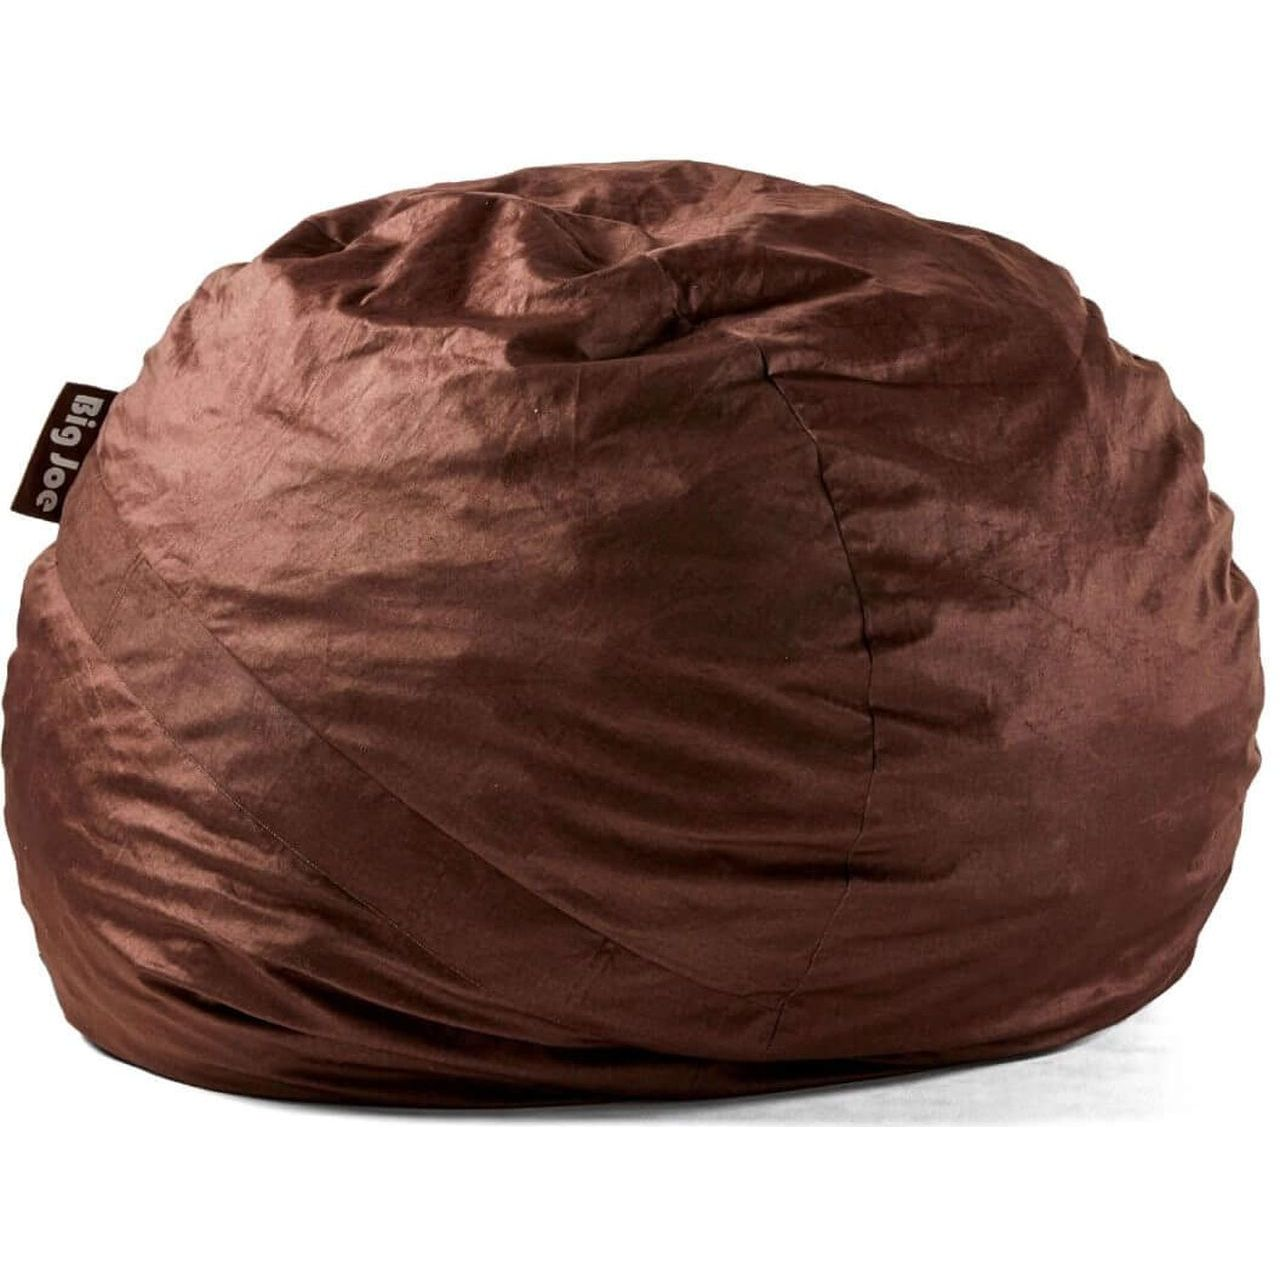 Big Joe Fuf Large Bean Bag Cover Only - Cocoa Lenox